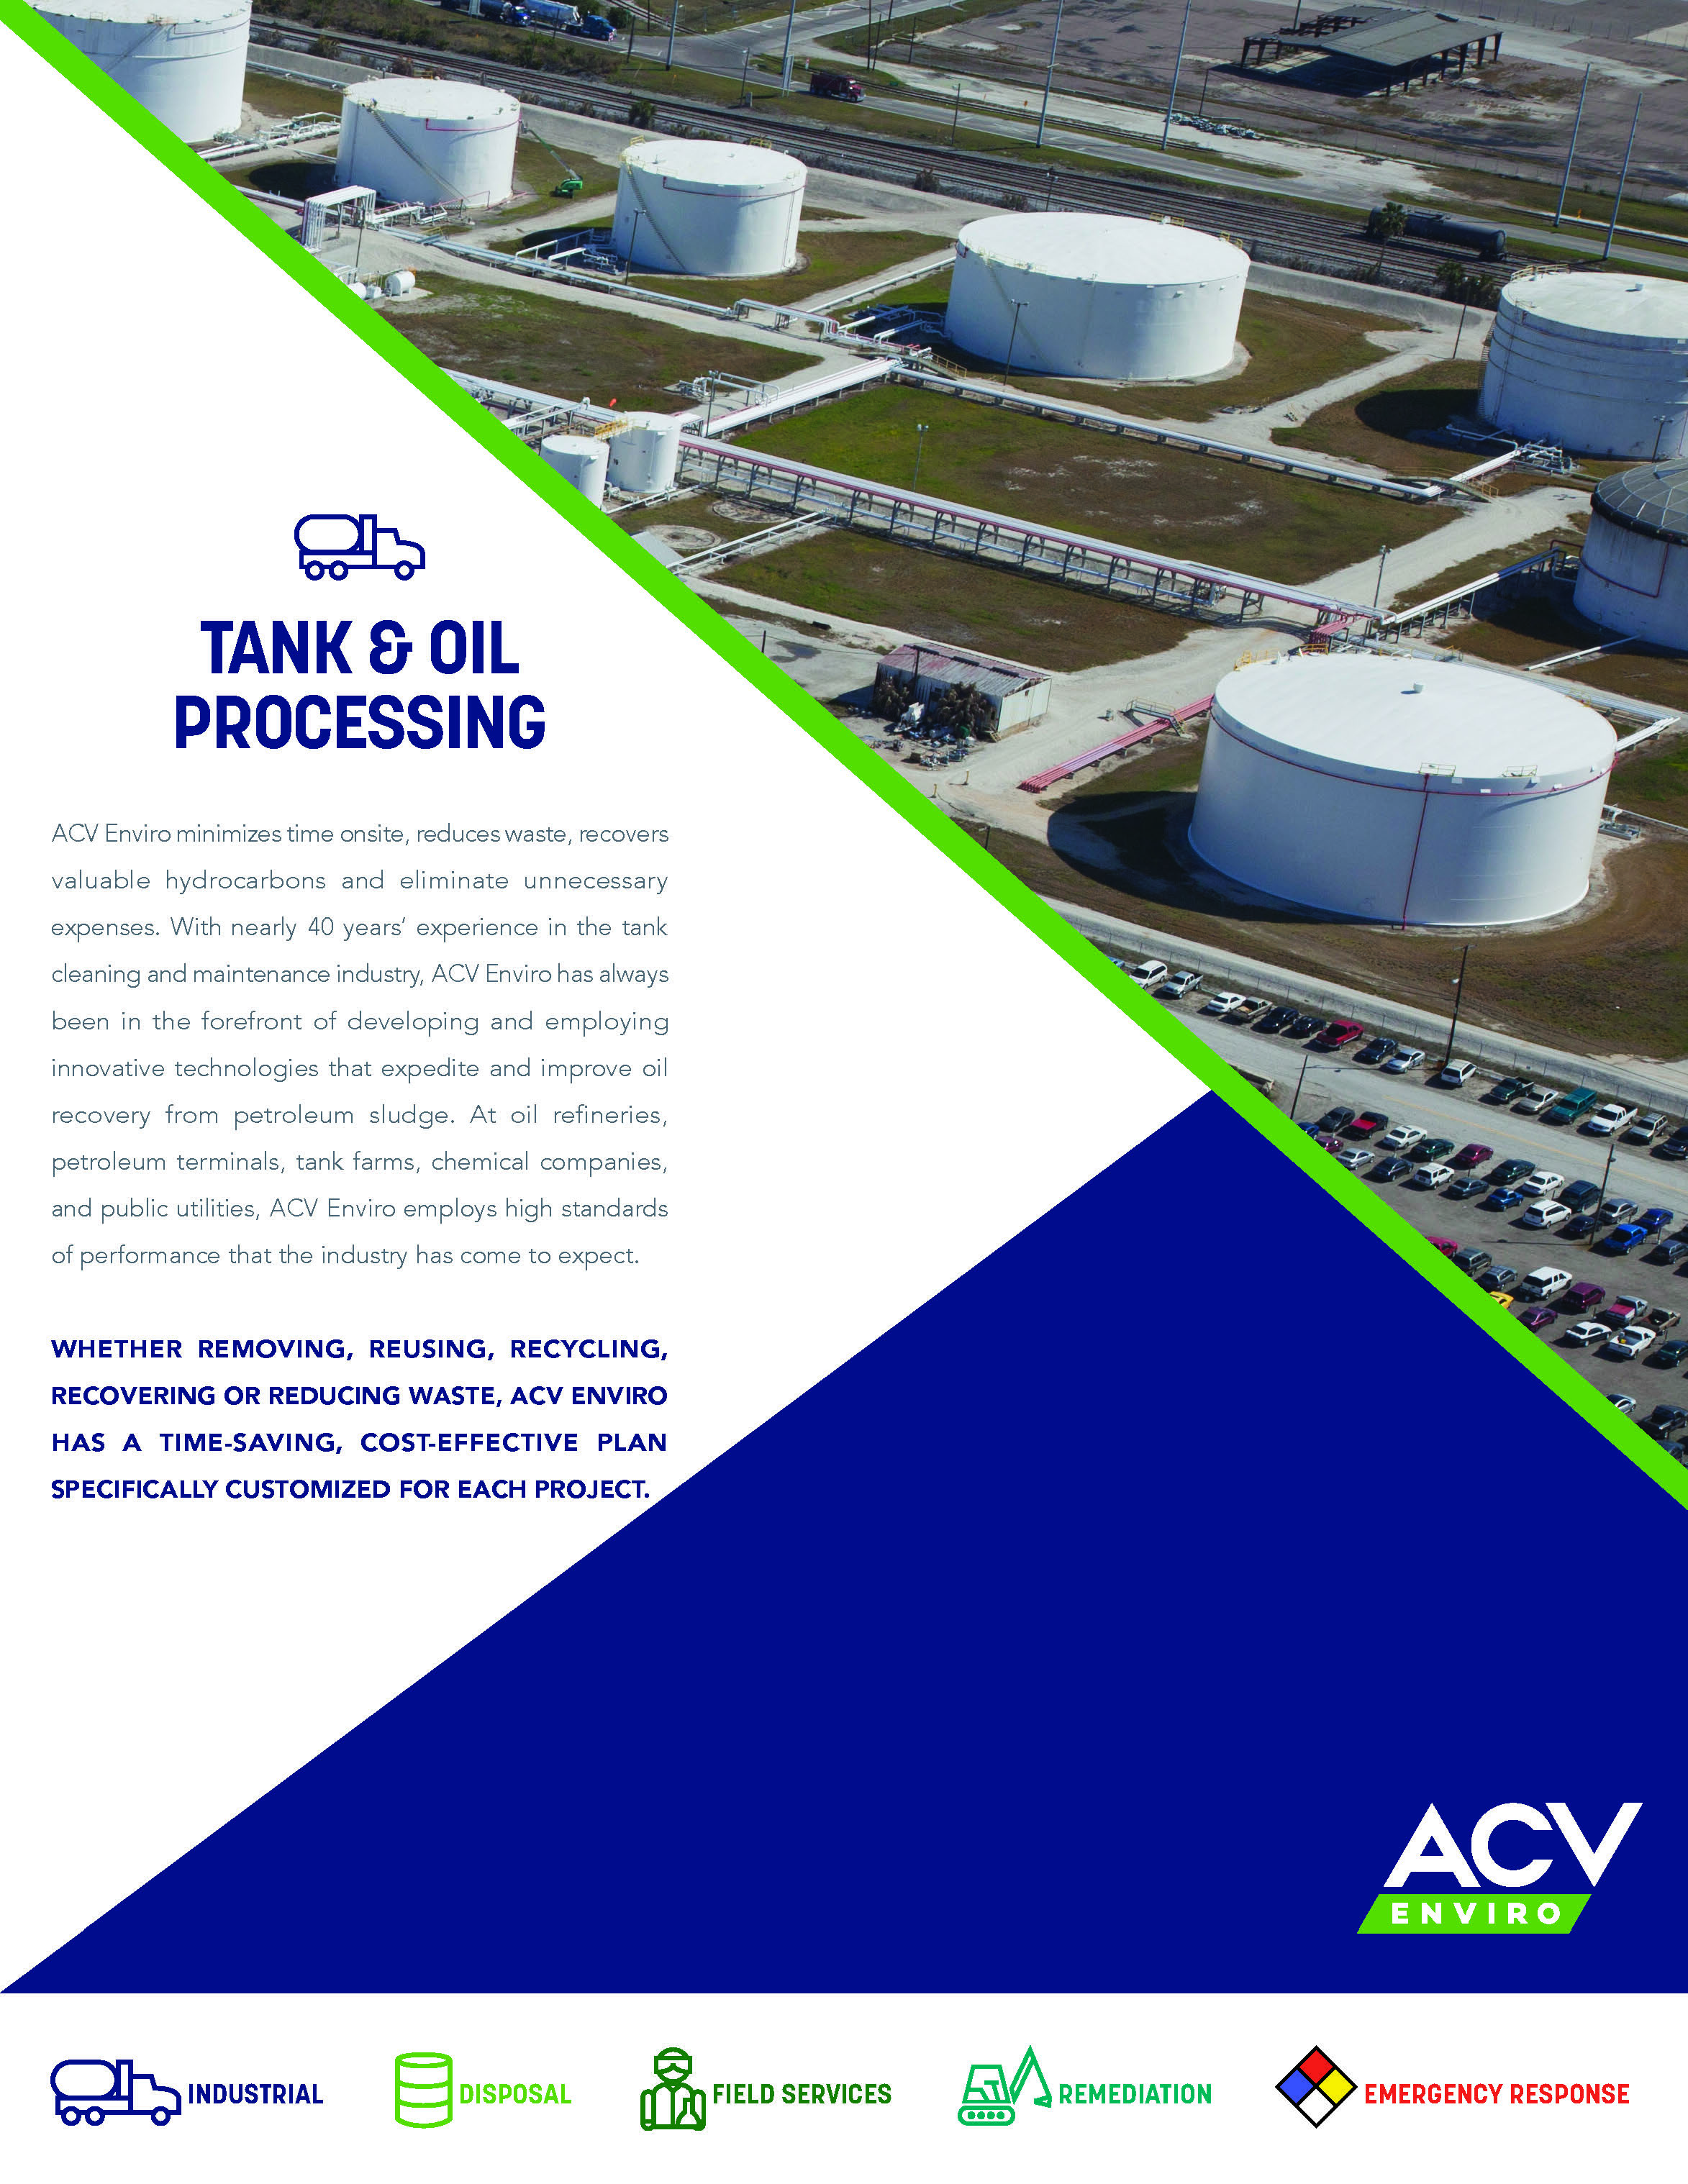 Tank & Oil Processing